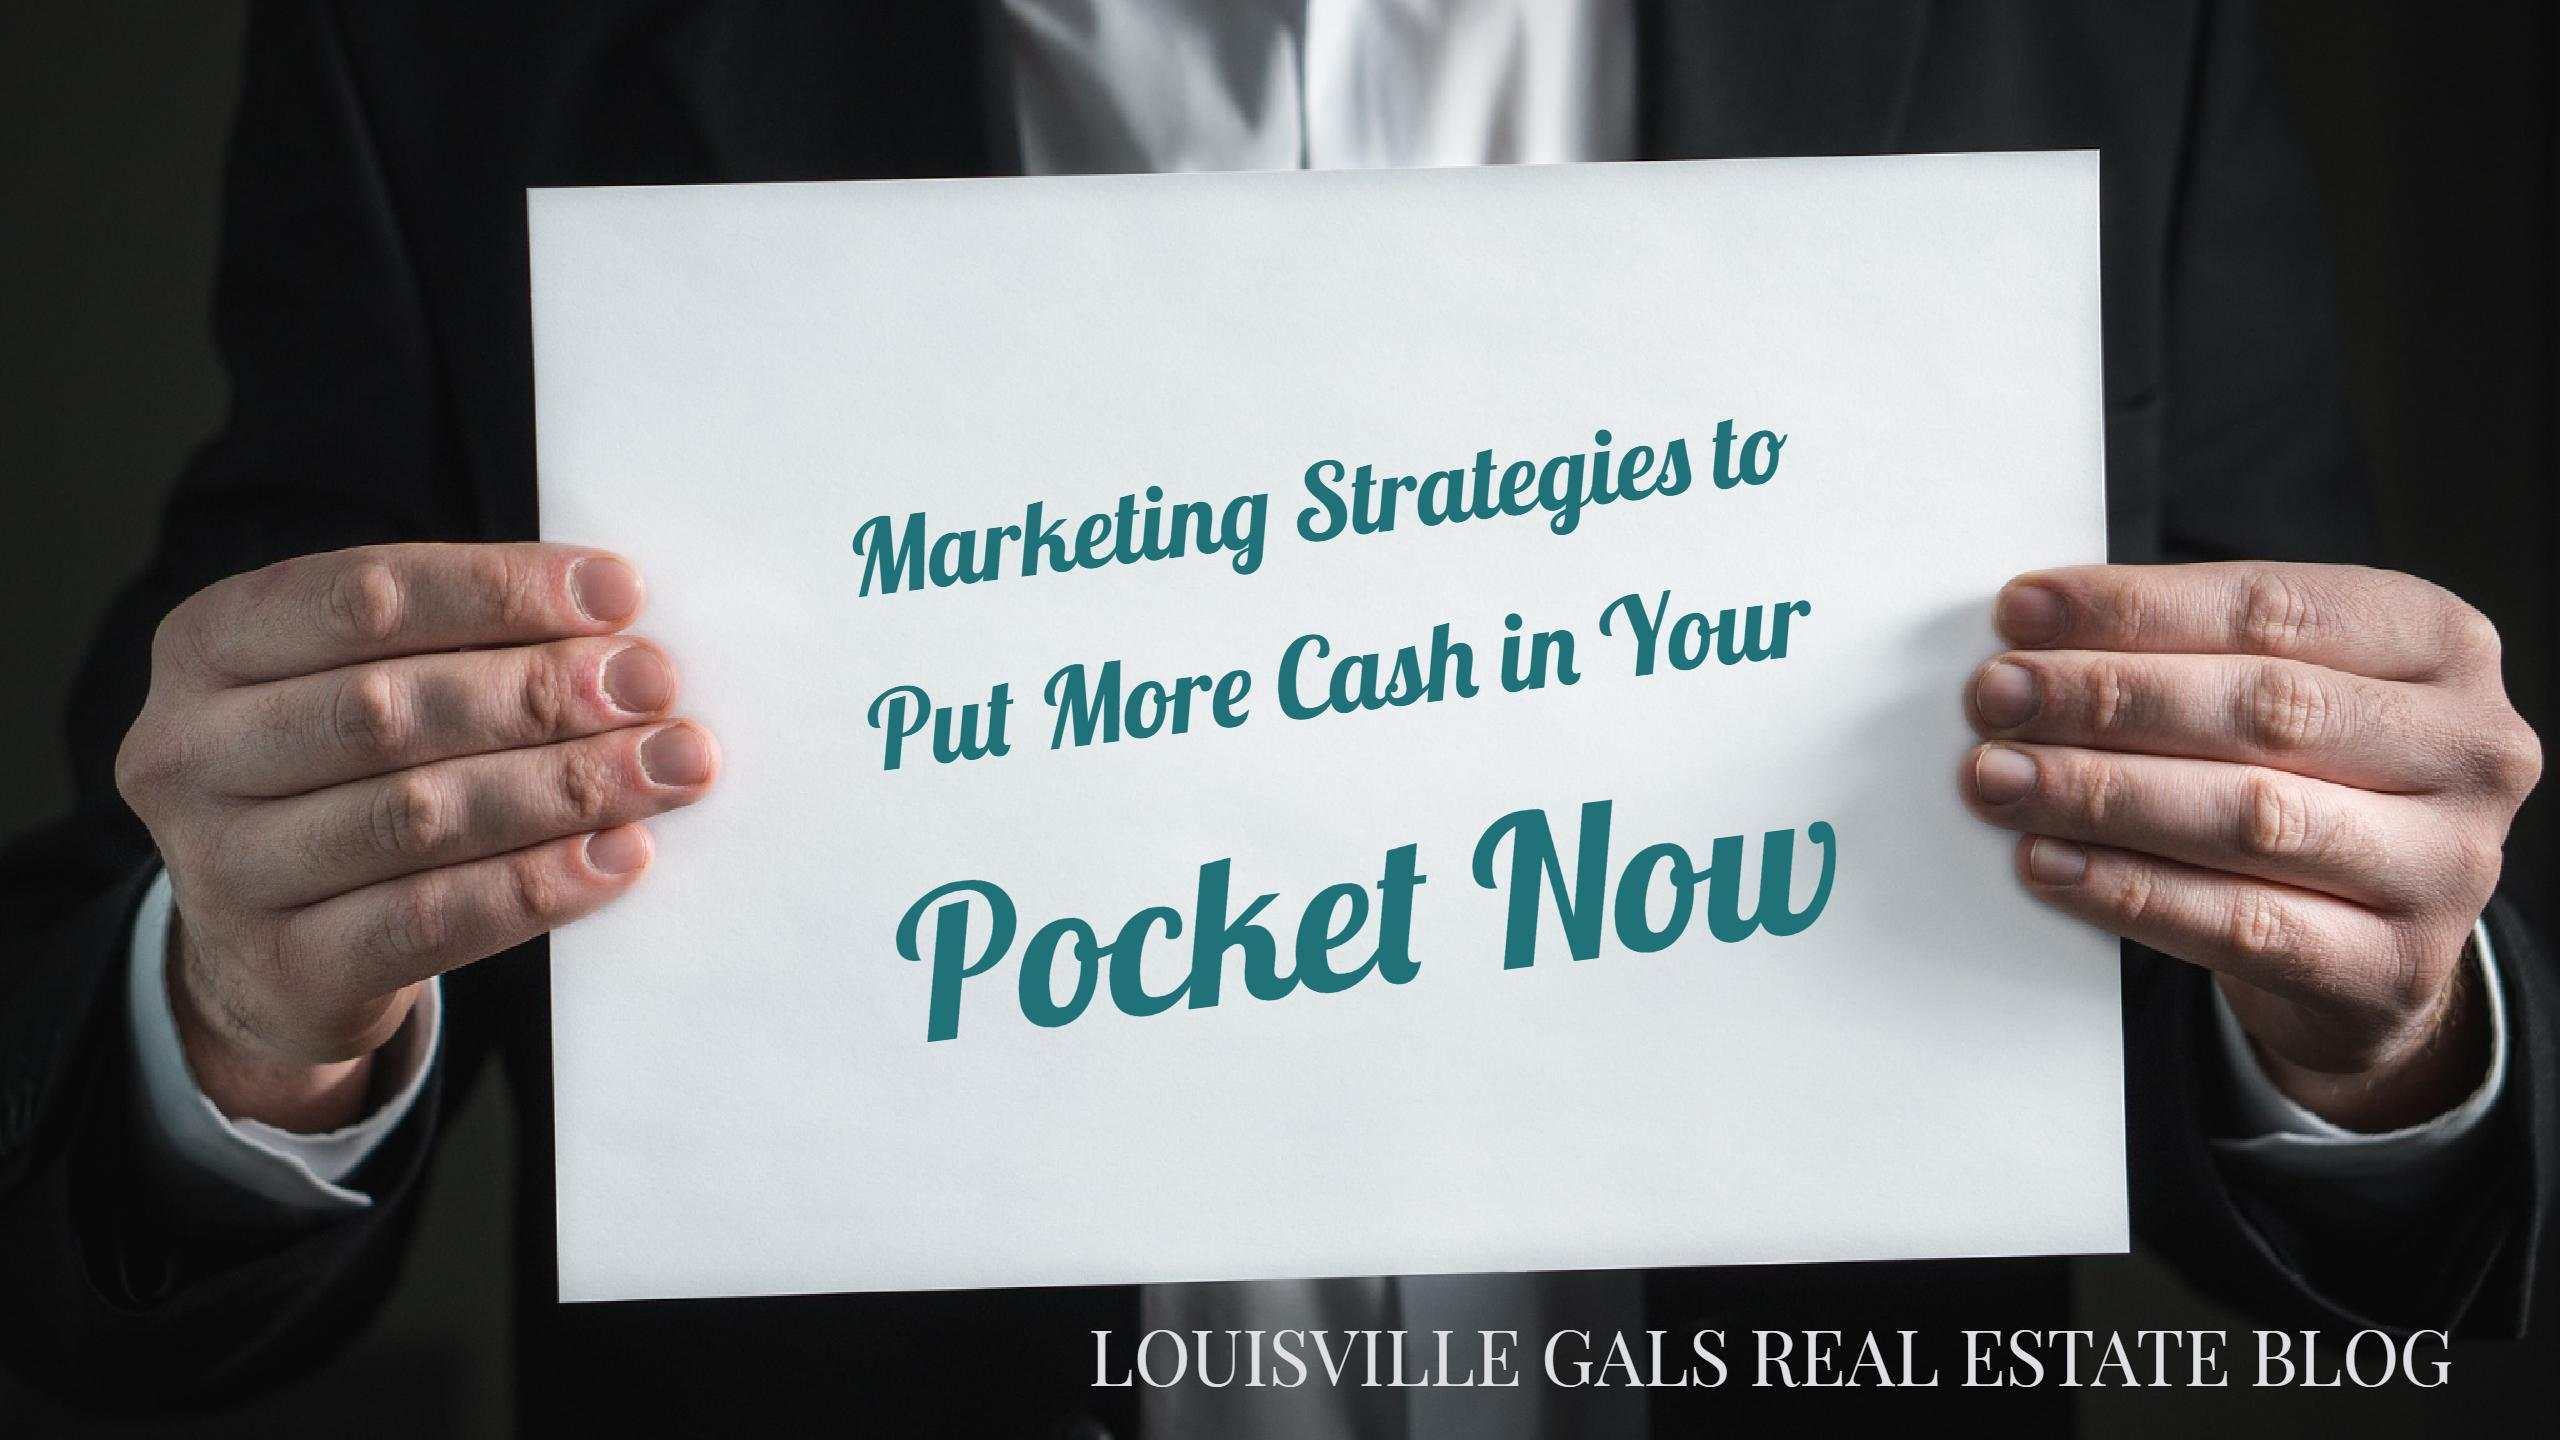 How to Implement Marketing Strategies that Will Put More Cash in Your Pocket